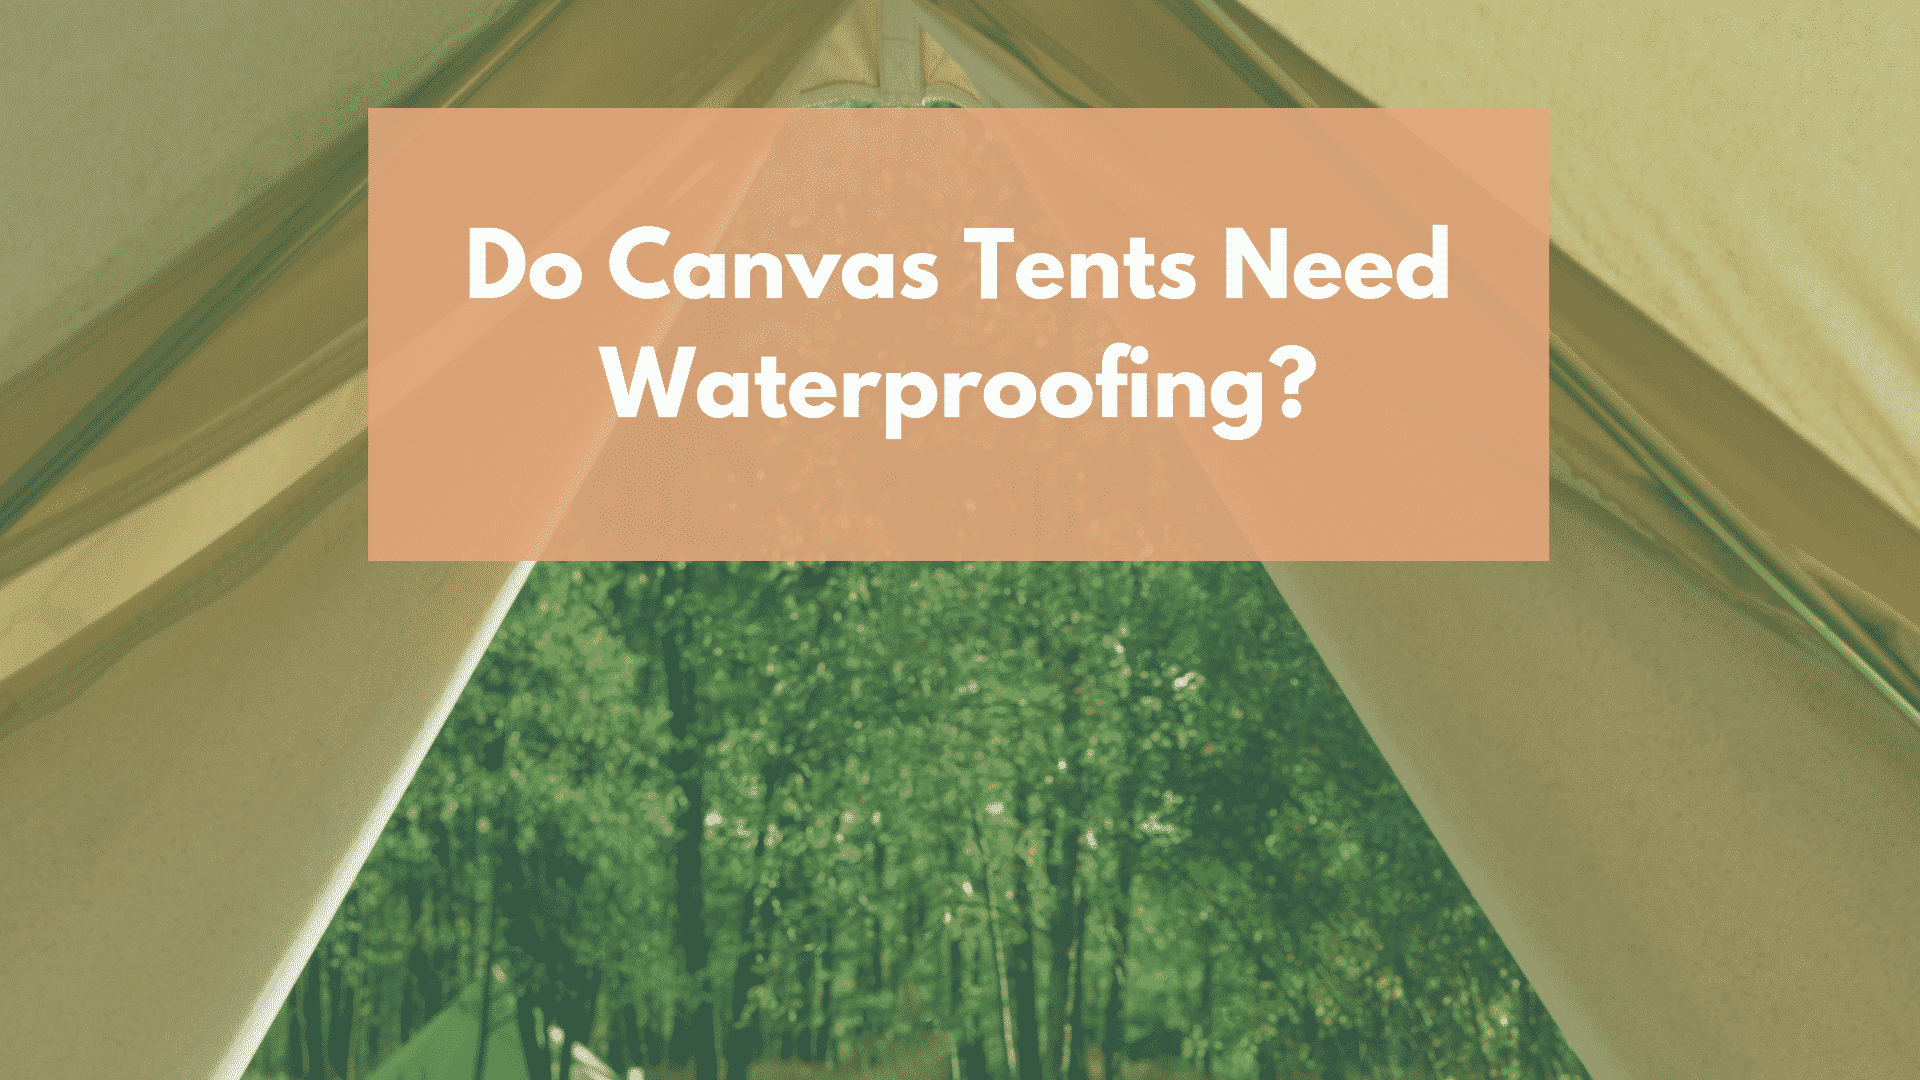 do canvas tents need waterproofing?